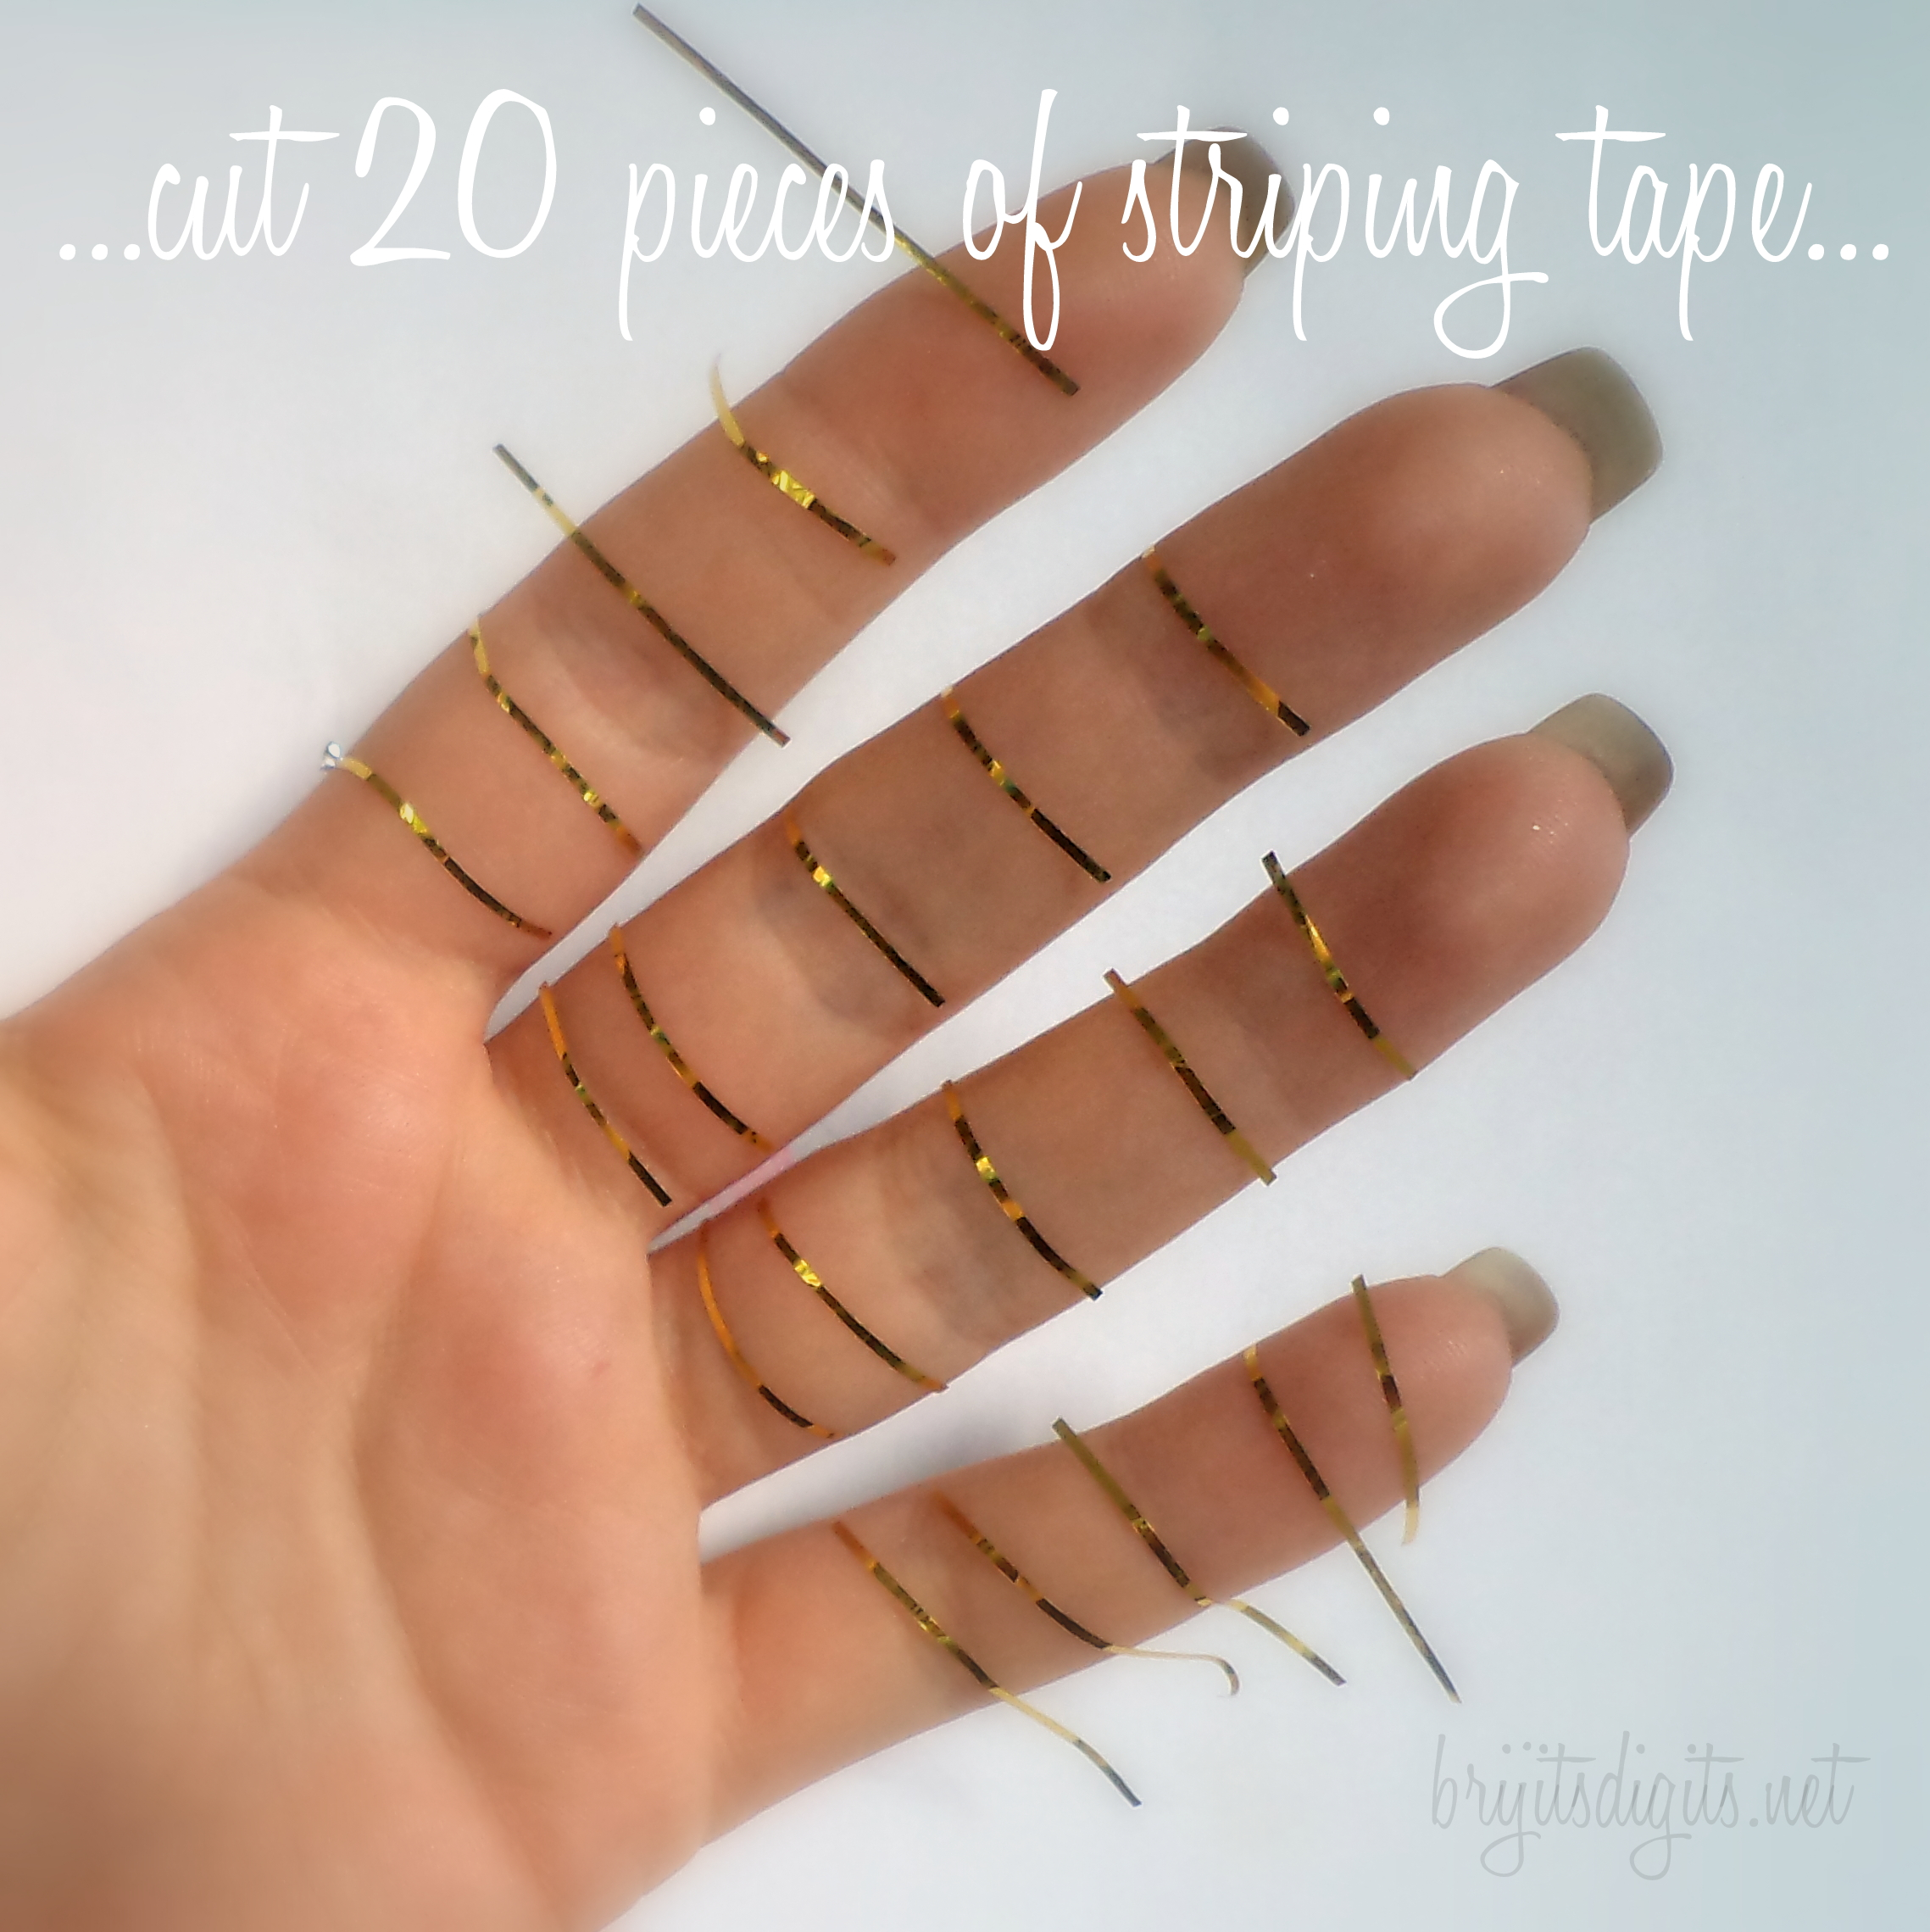 Striping Tape Nail Art Tutorial Cut 20 pieces of striping tape